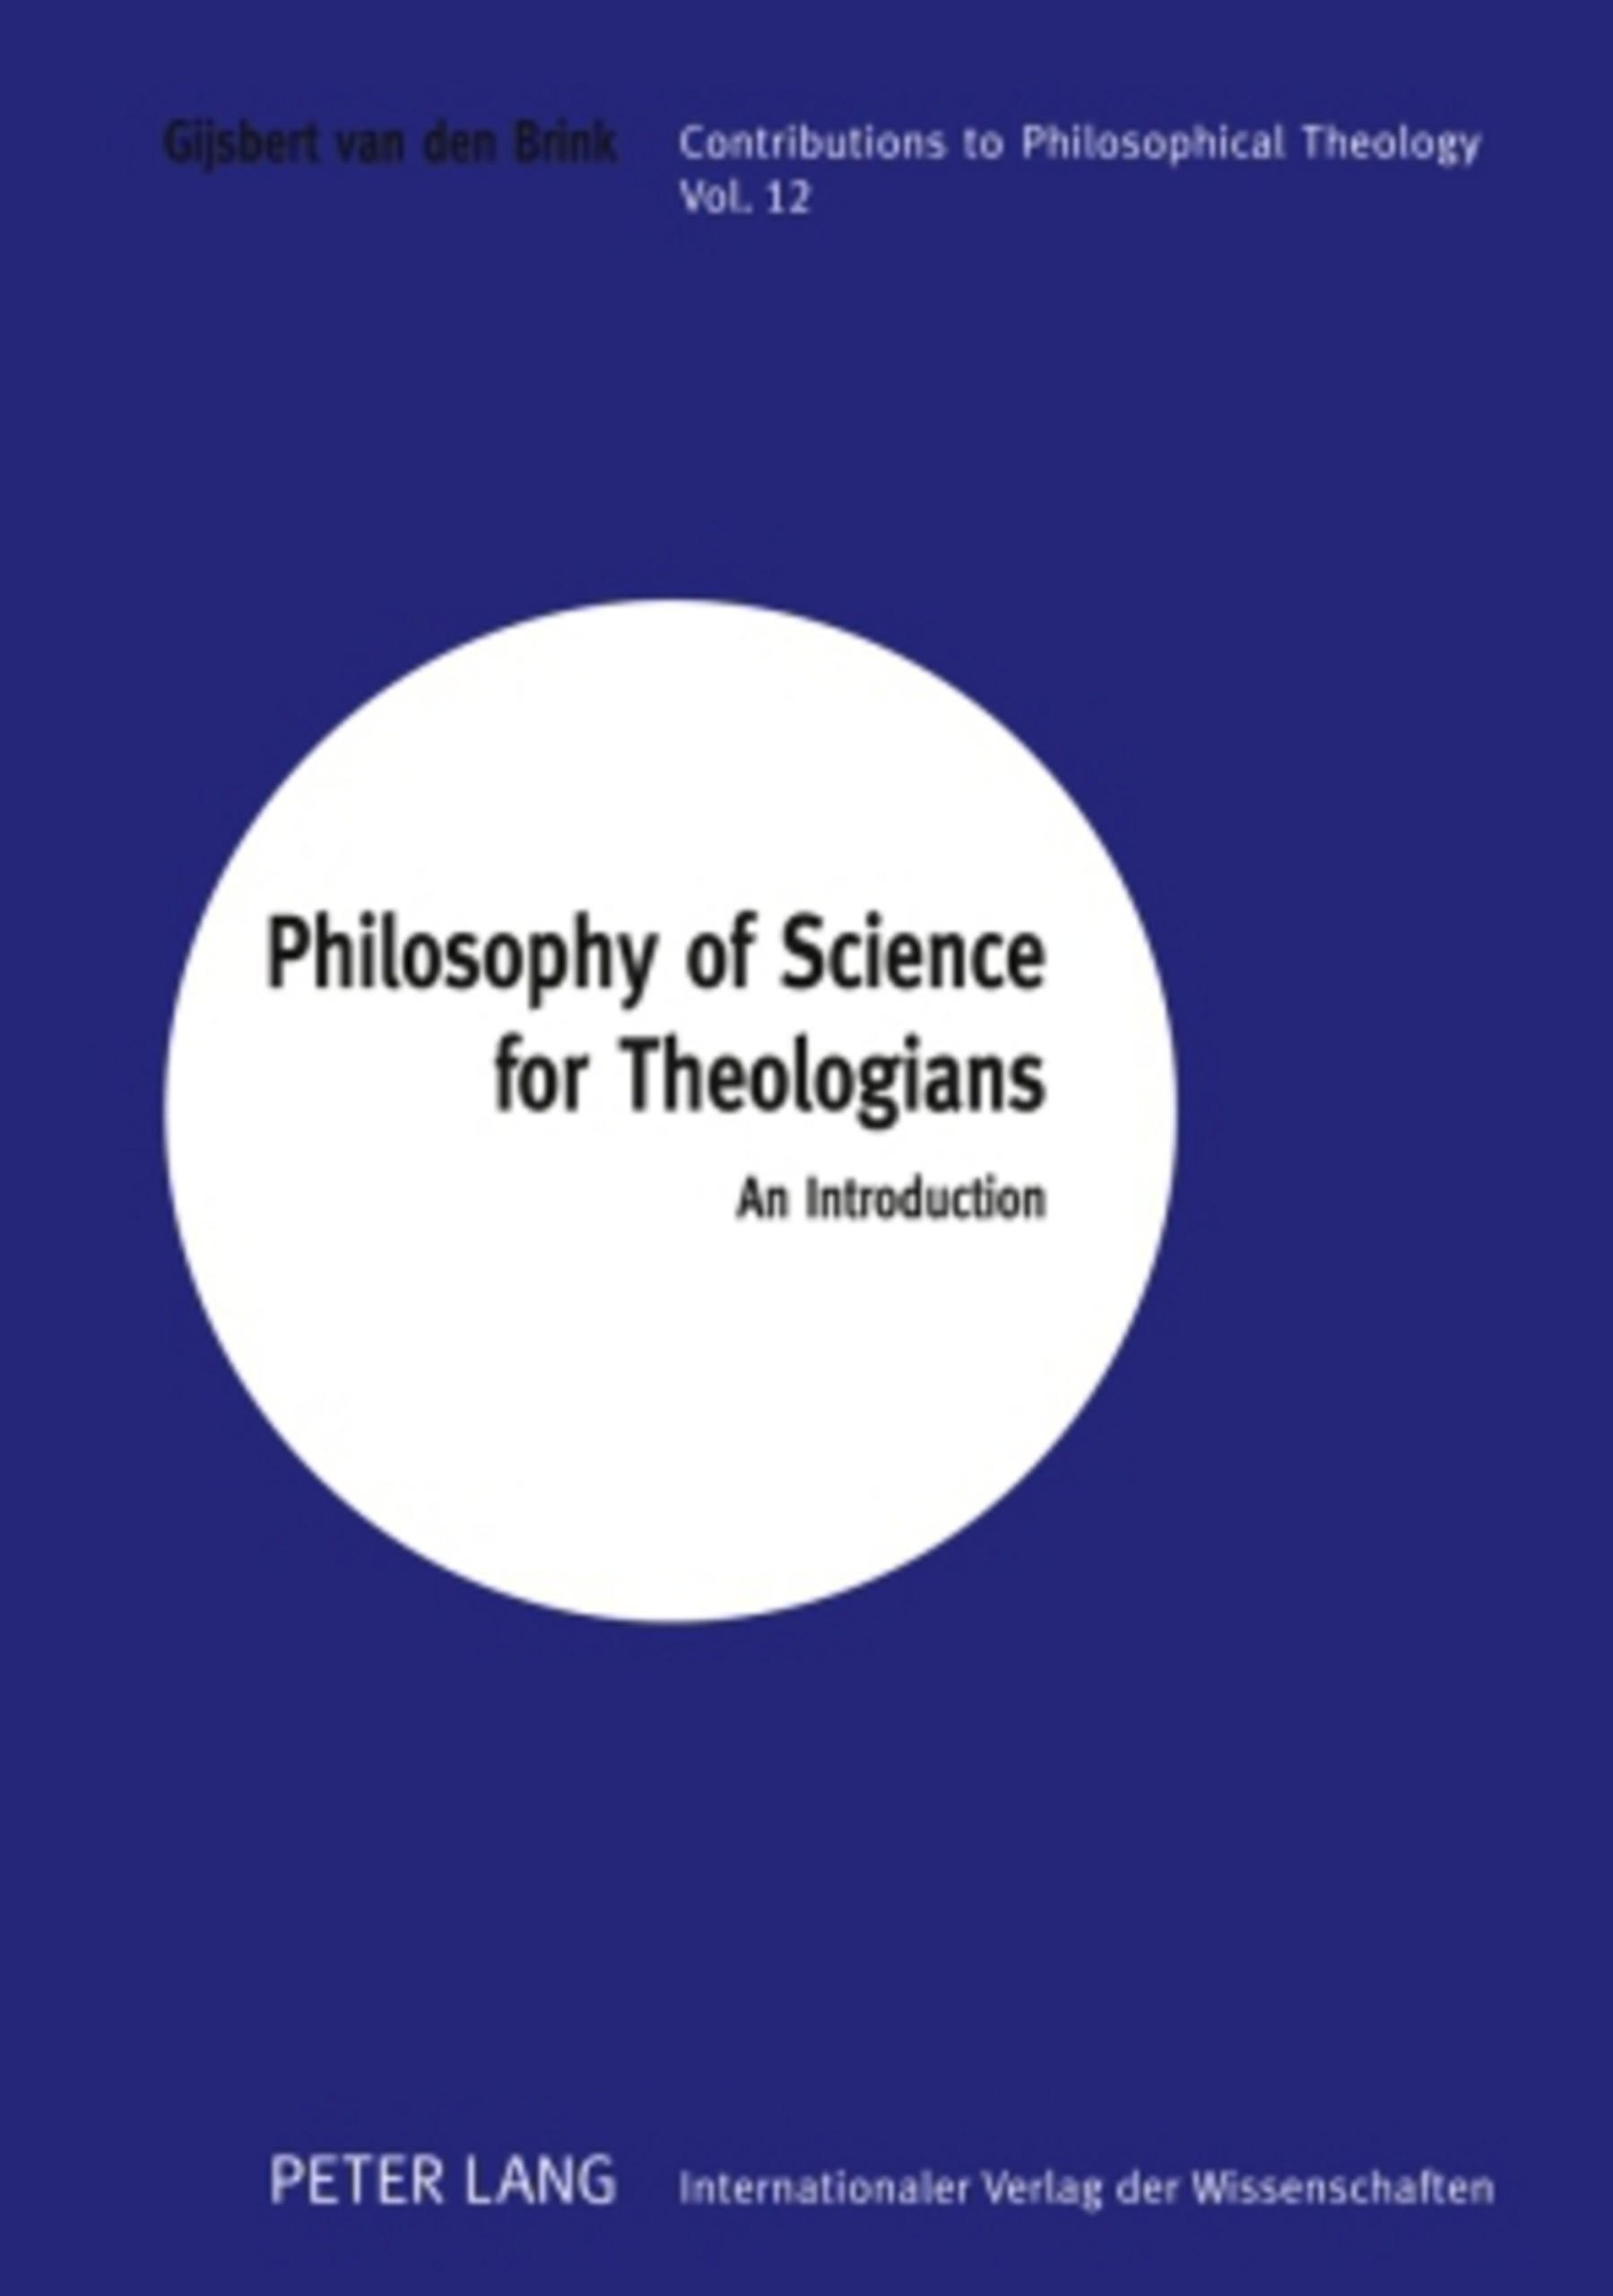 Title: Philosophy of Science for Theologians